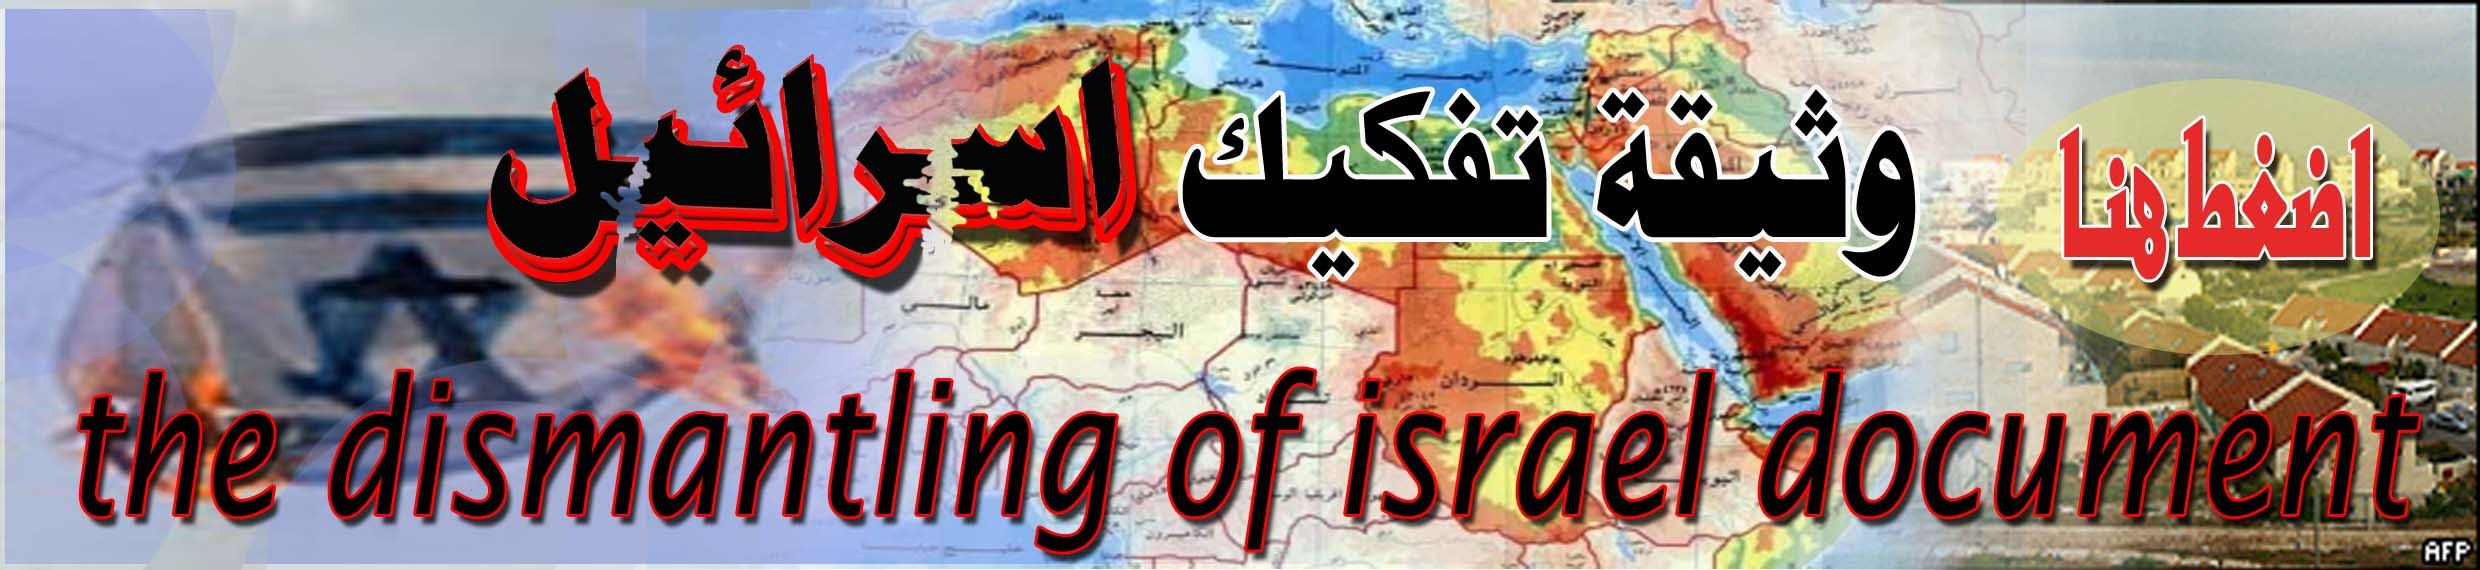 The dismantling of Israel Document, Israel is an outlawed entity